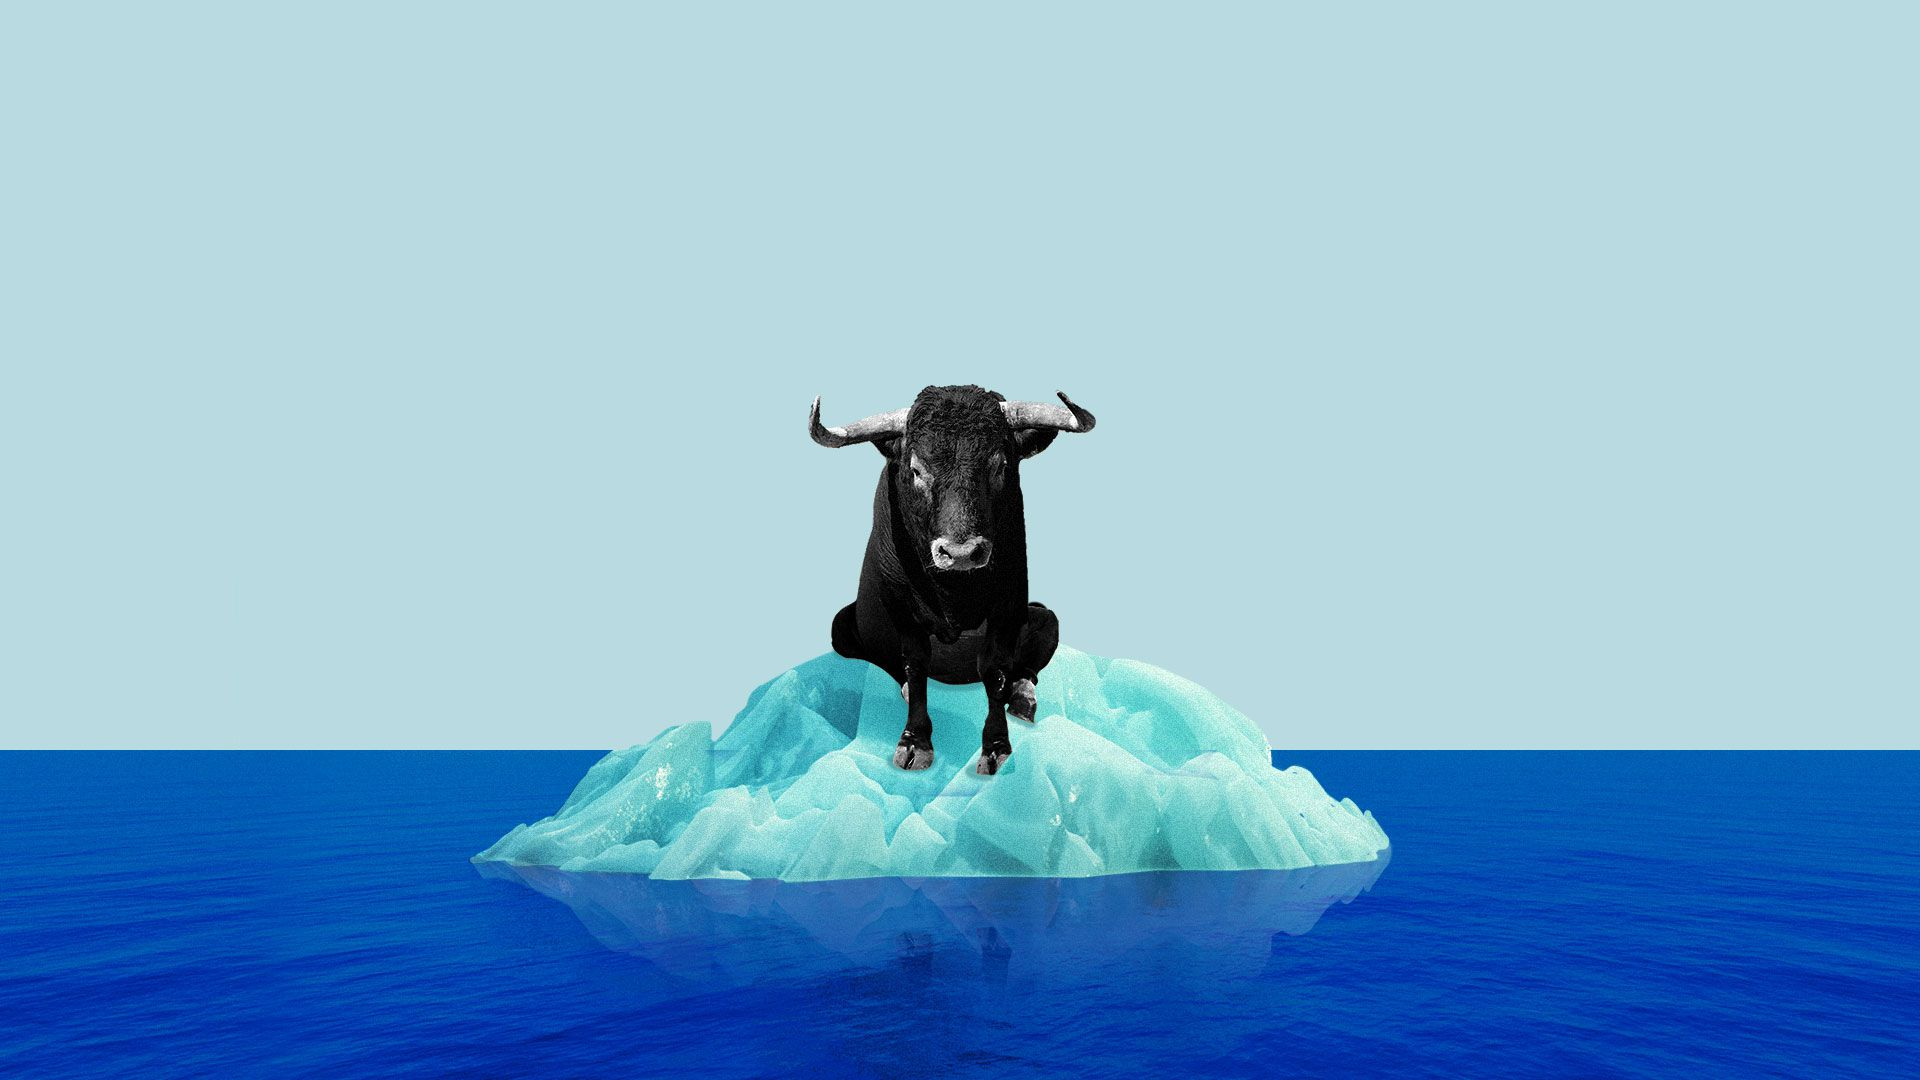 Illustration of a bull sitting on a very small iceberg surrounded by water